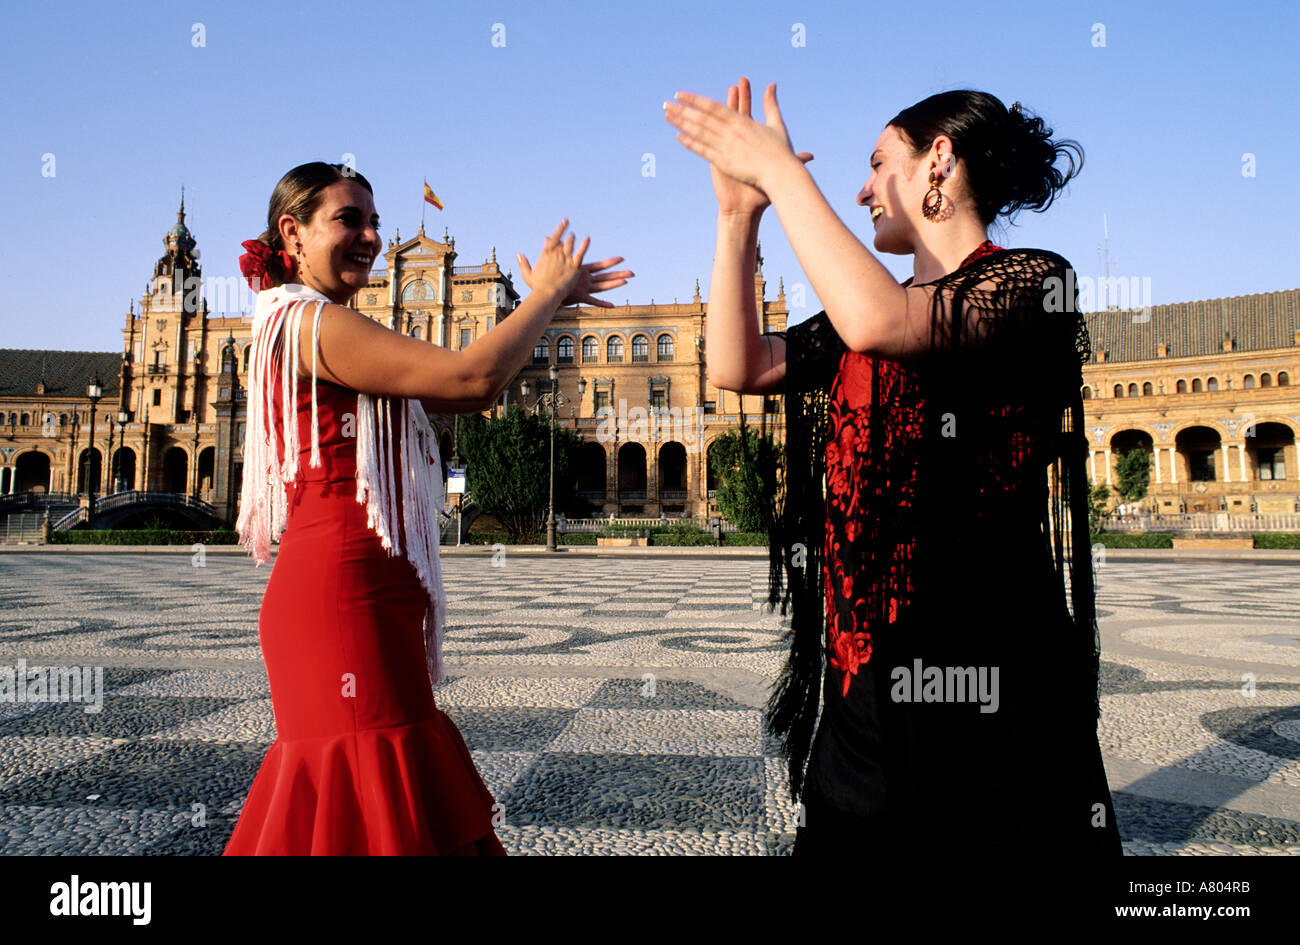 Spain andalusia sevilla two flamenco dancers at spain for Espectaculo flamenco seville sevilla